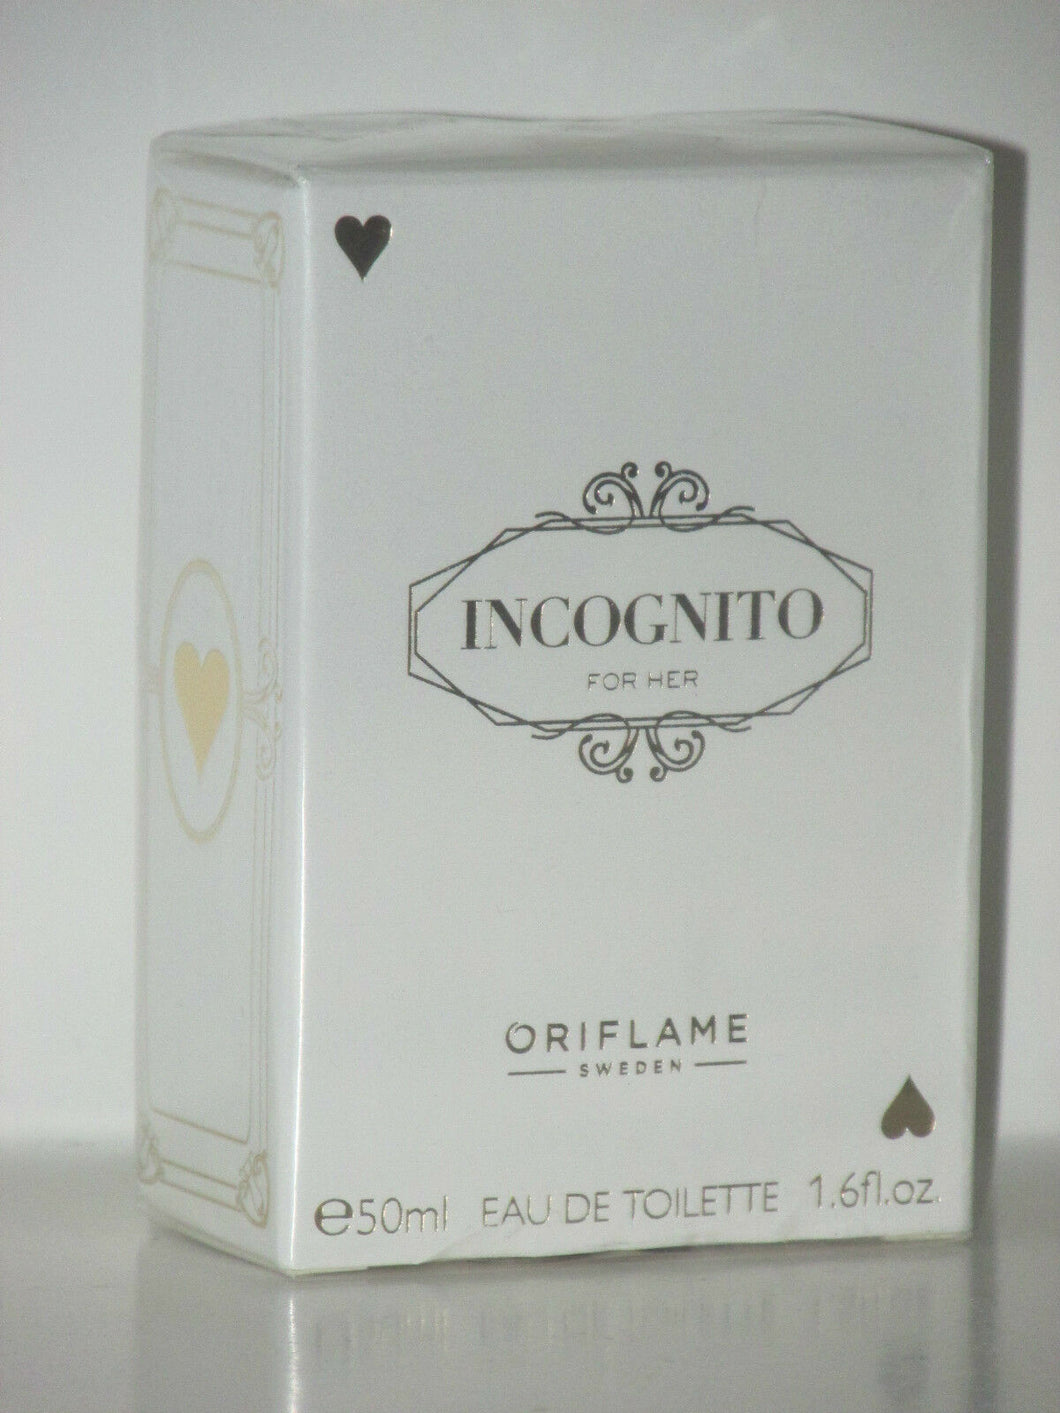 ORIFLAME SWEDEN INCOGNITO FOR HER (FRUITY/FLORAL) EDT SPRAY 50 ml. NEW -SEALED!